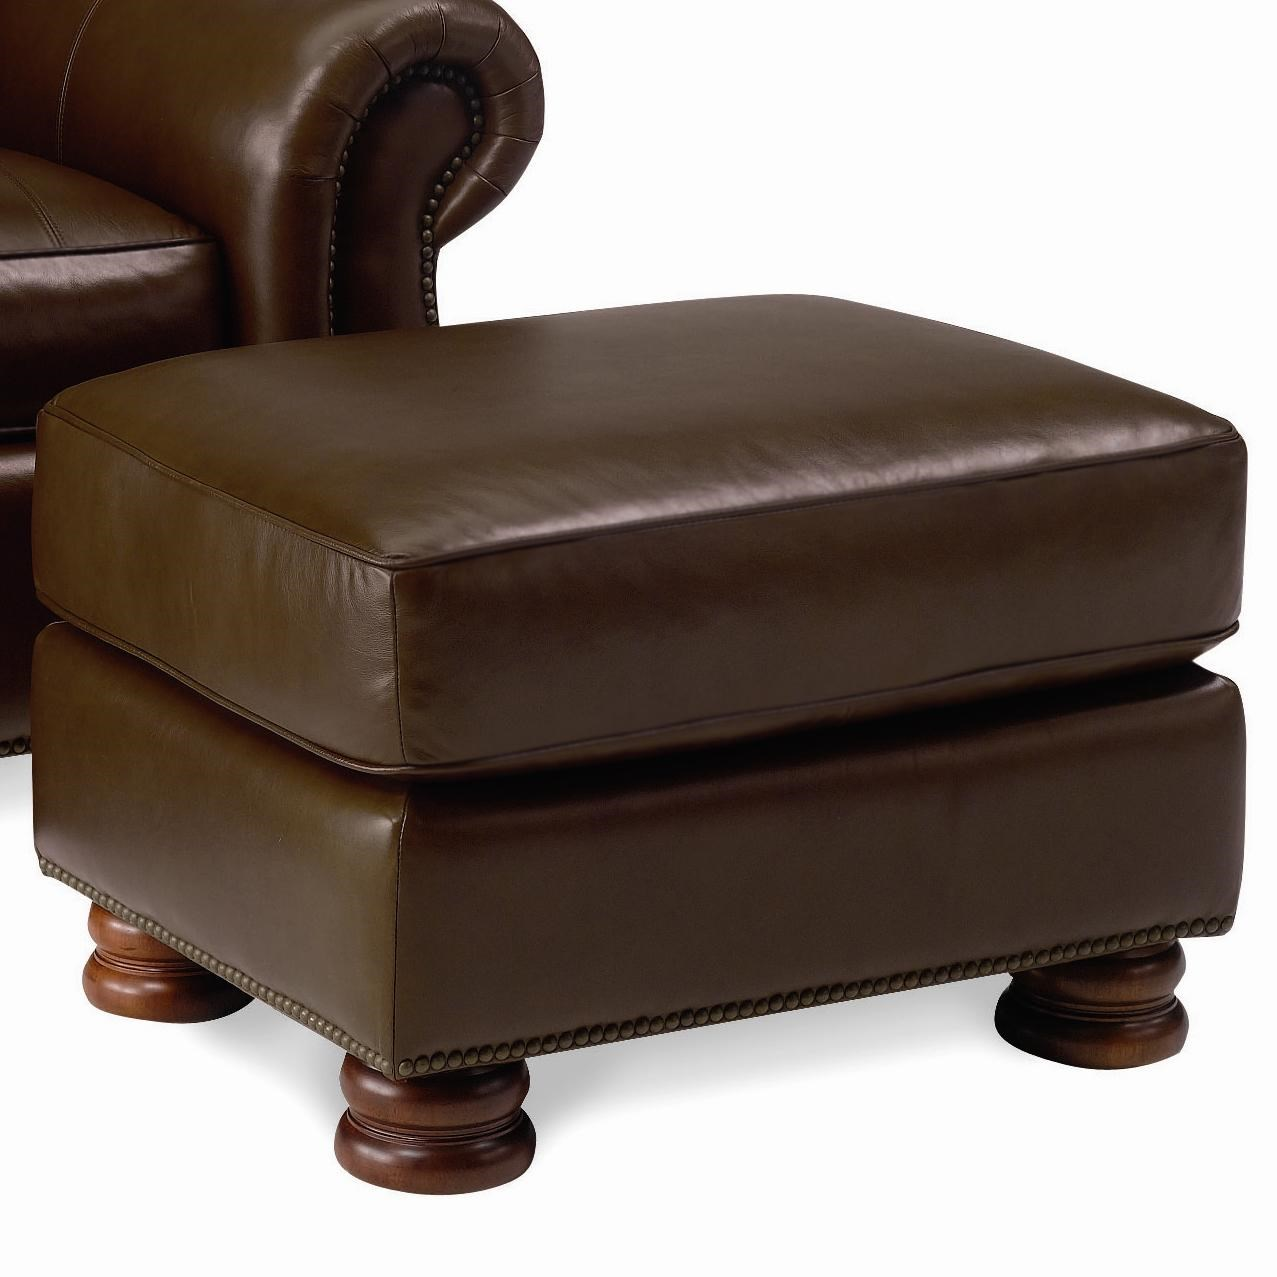 Thomasville® Leather Choices   Benjamin Leather Select Ottoman With Bun  Feet In Double Fudge Leather